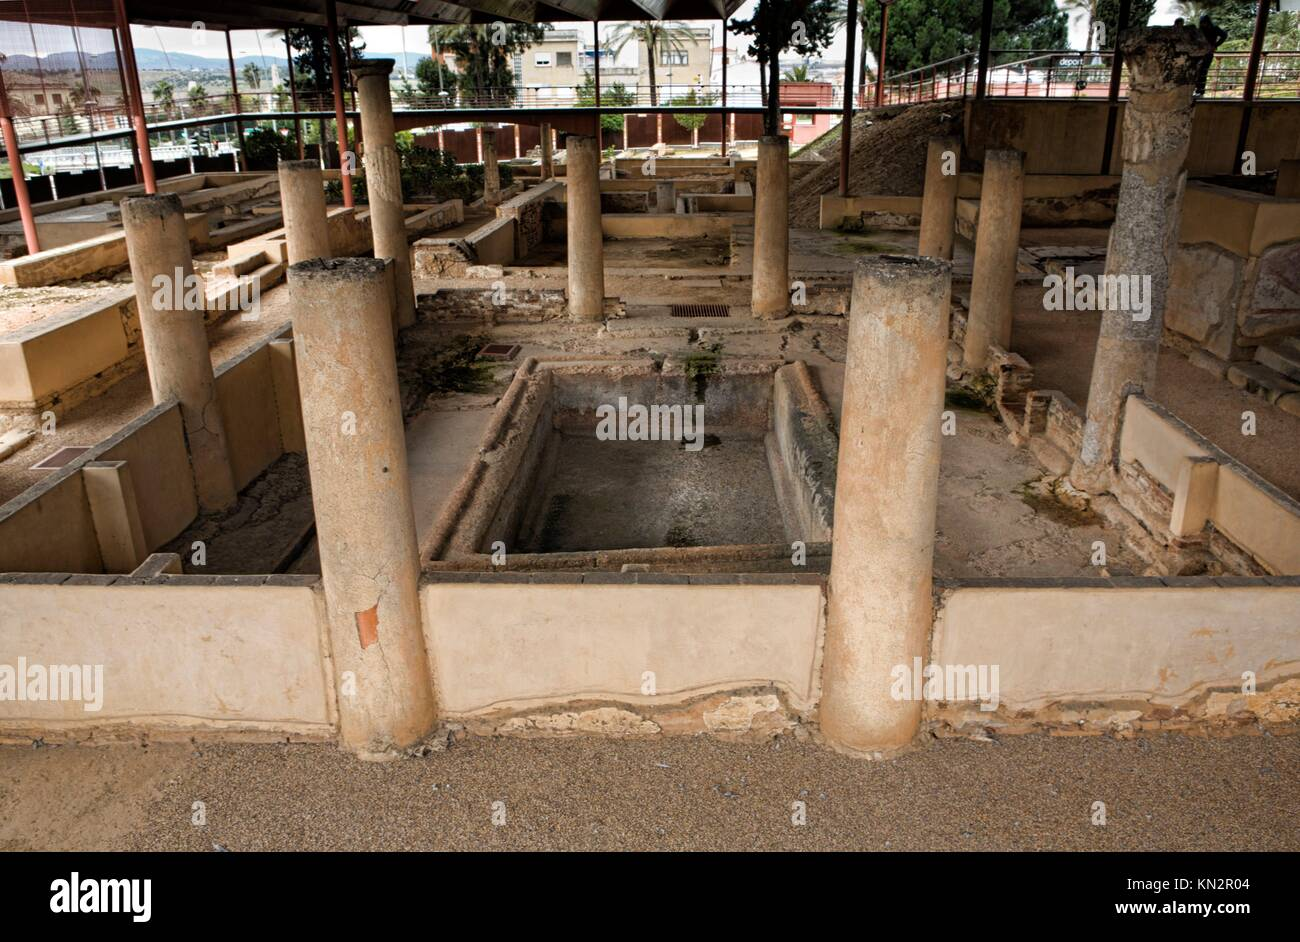 Peristyle of Mithraeum house, Merida, Spain - Stock Image